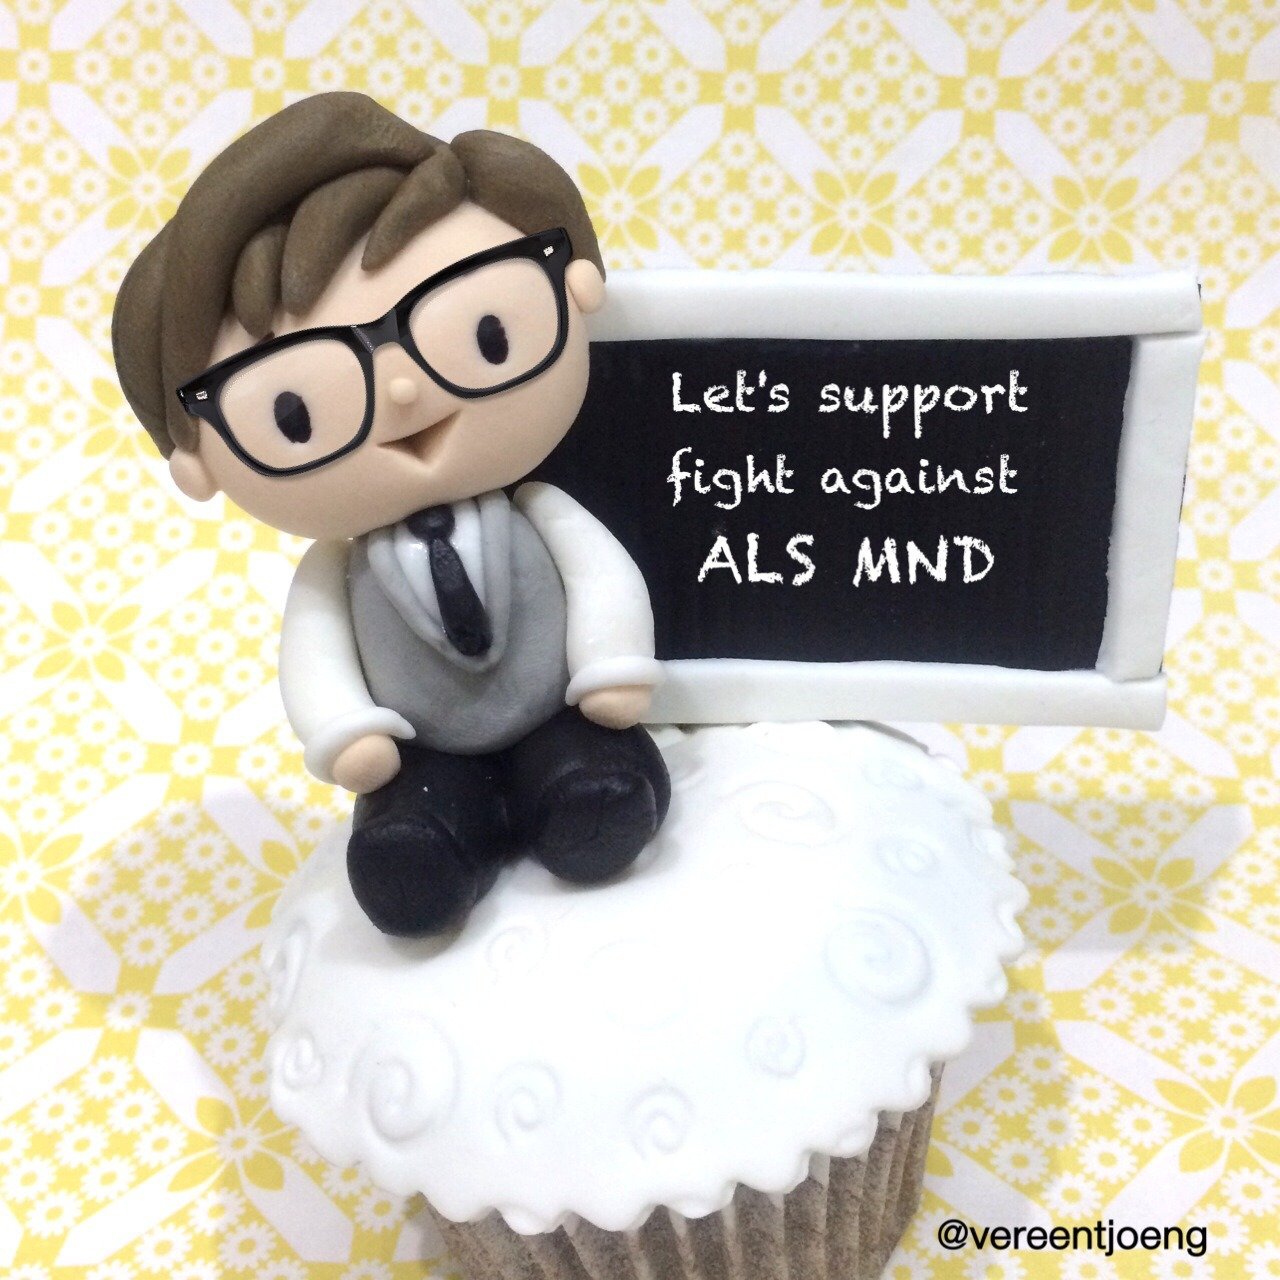 sodelightfully:</p> <p>Let's celebrate Benedict's Birthday by support the fight against ALS MND, donate here http://web.alsa.org/site/TR?px=4109564&amp;fr_id=10054&amp;pg=personal#.U6Sq3XG9Kc0 :D</p> <p>awww :)